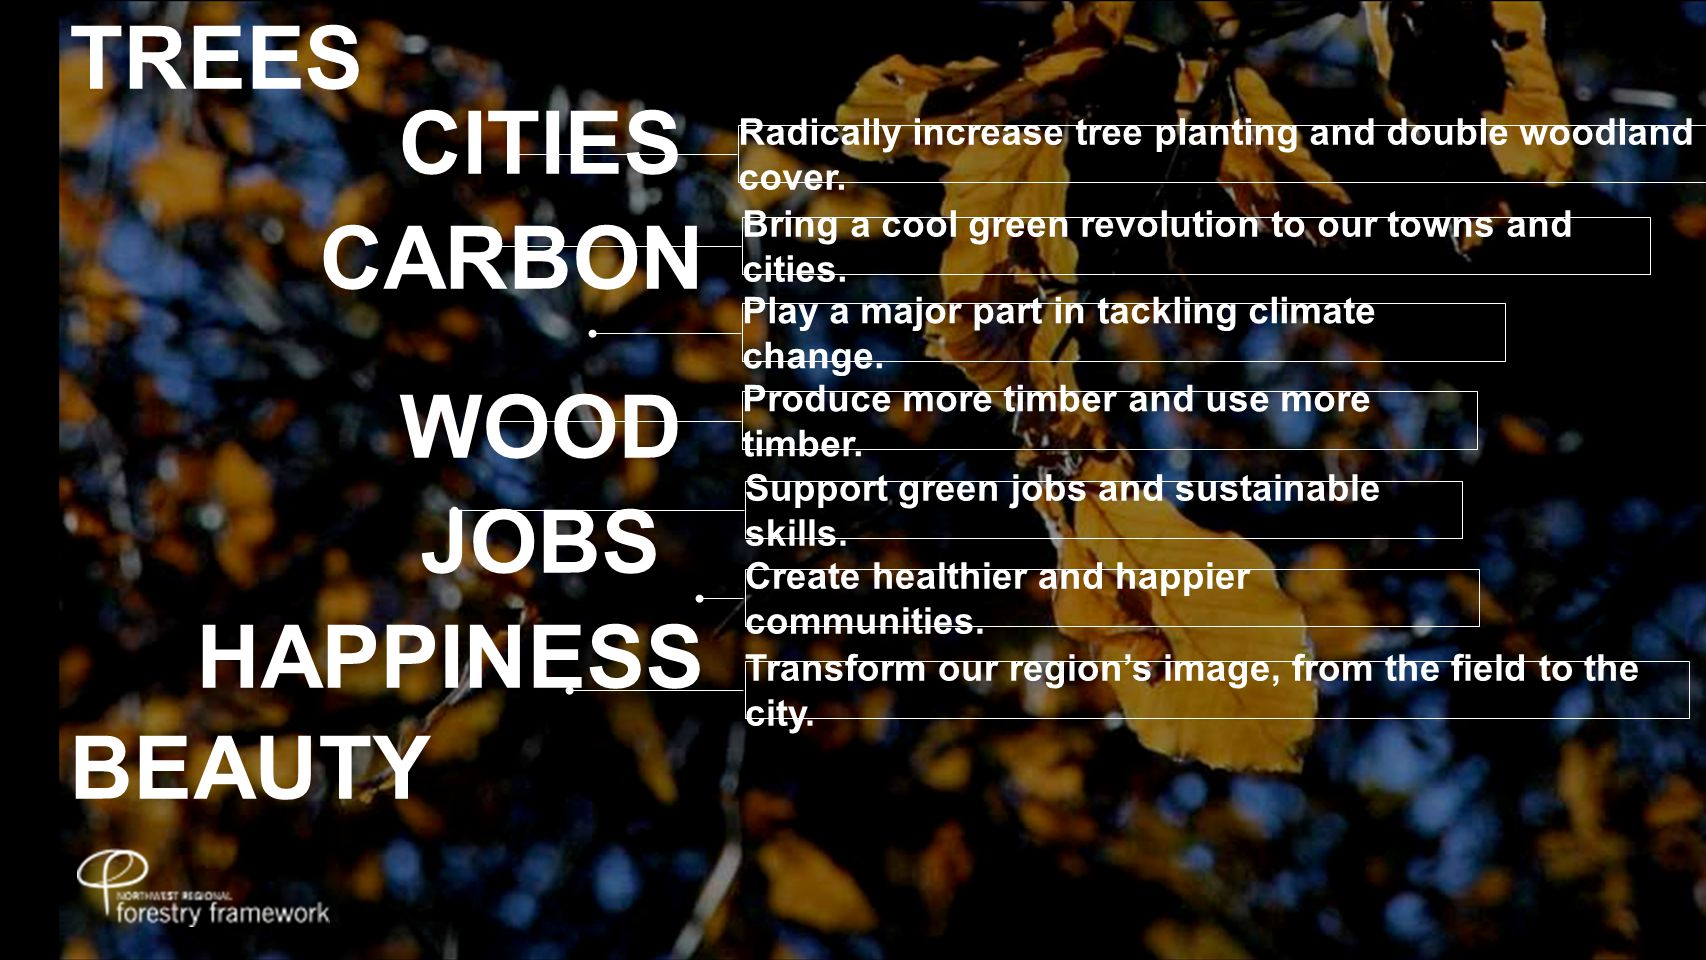 TREES CITIES CARBON WOOD JOBS HAPPINESS BEAUTY Radically increase tree planting and double woodland cover.